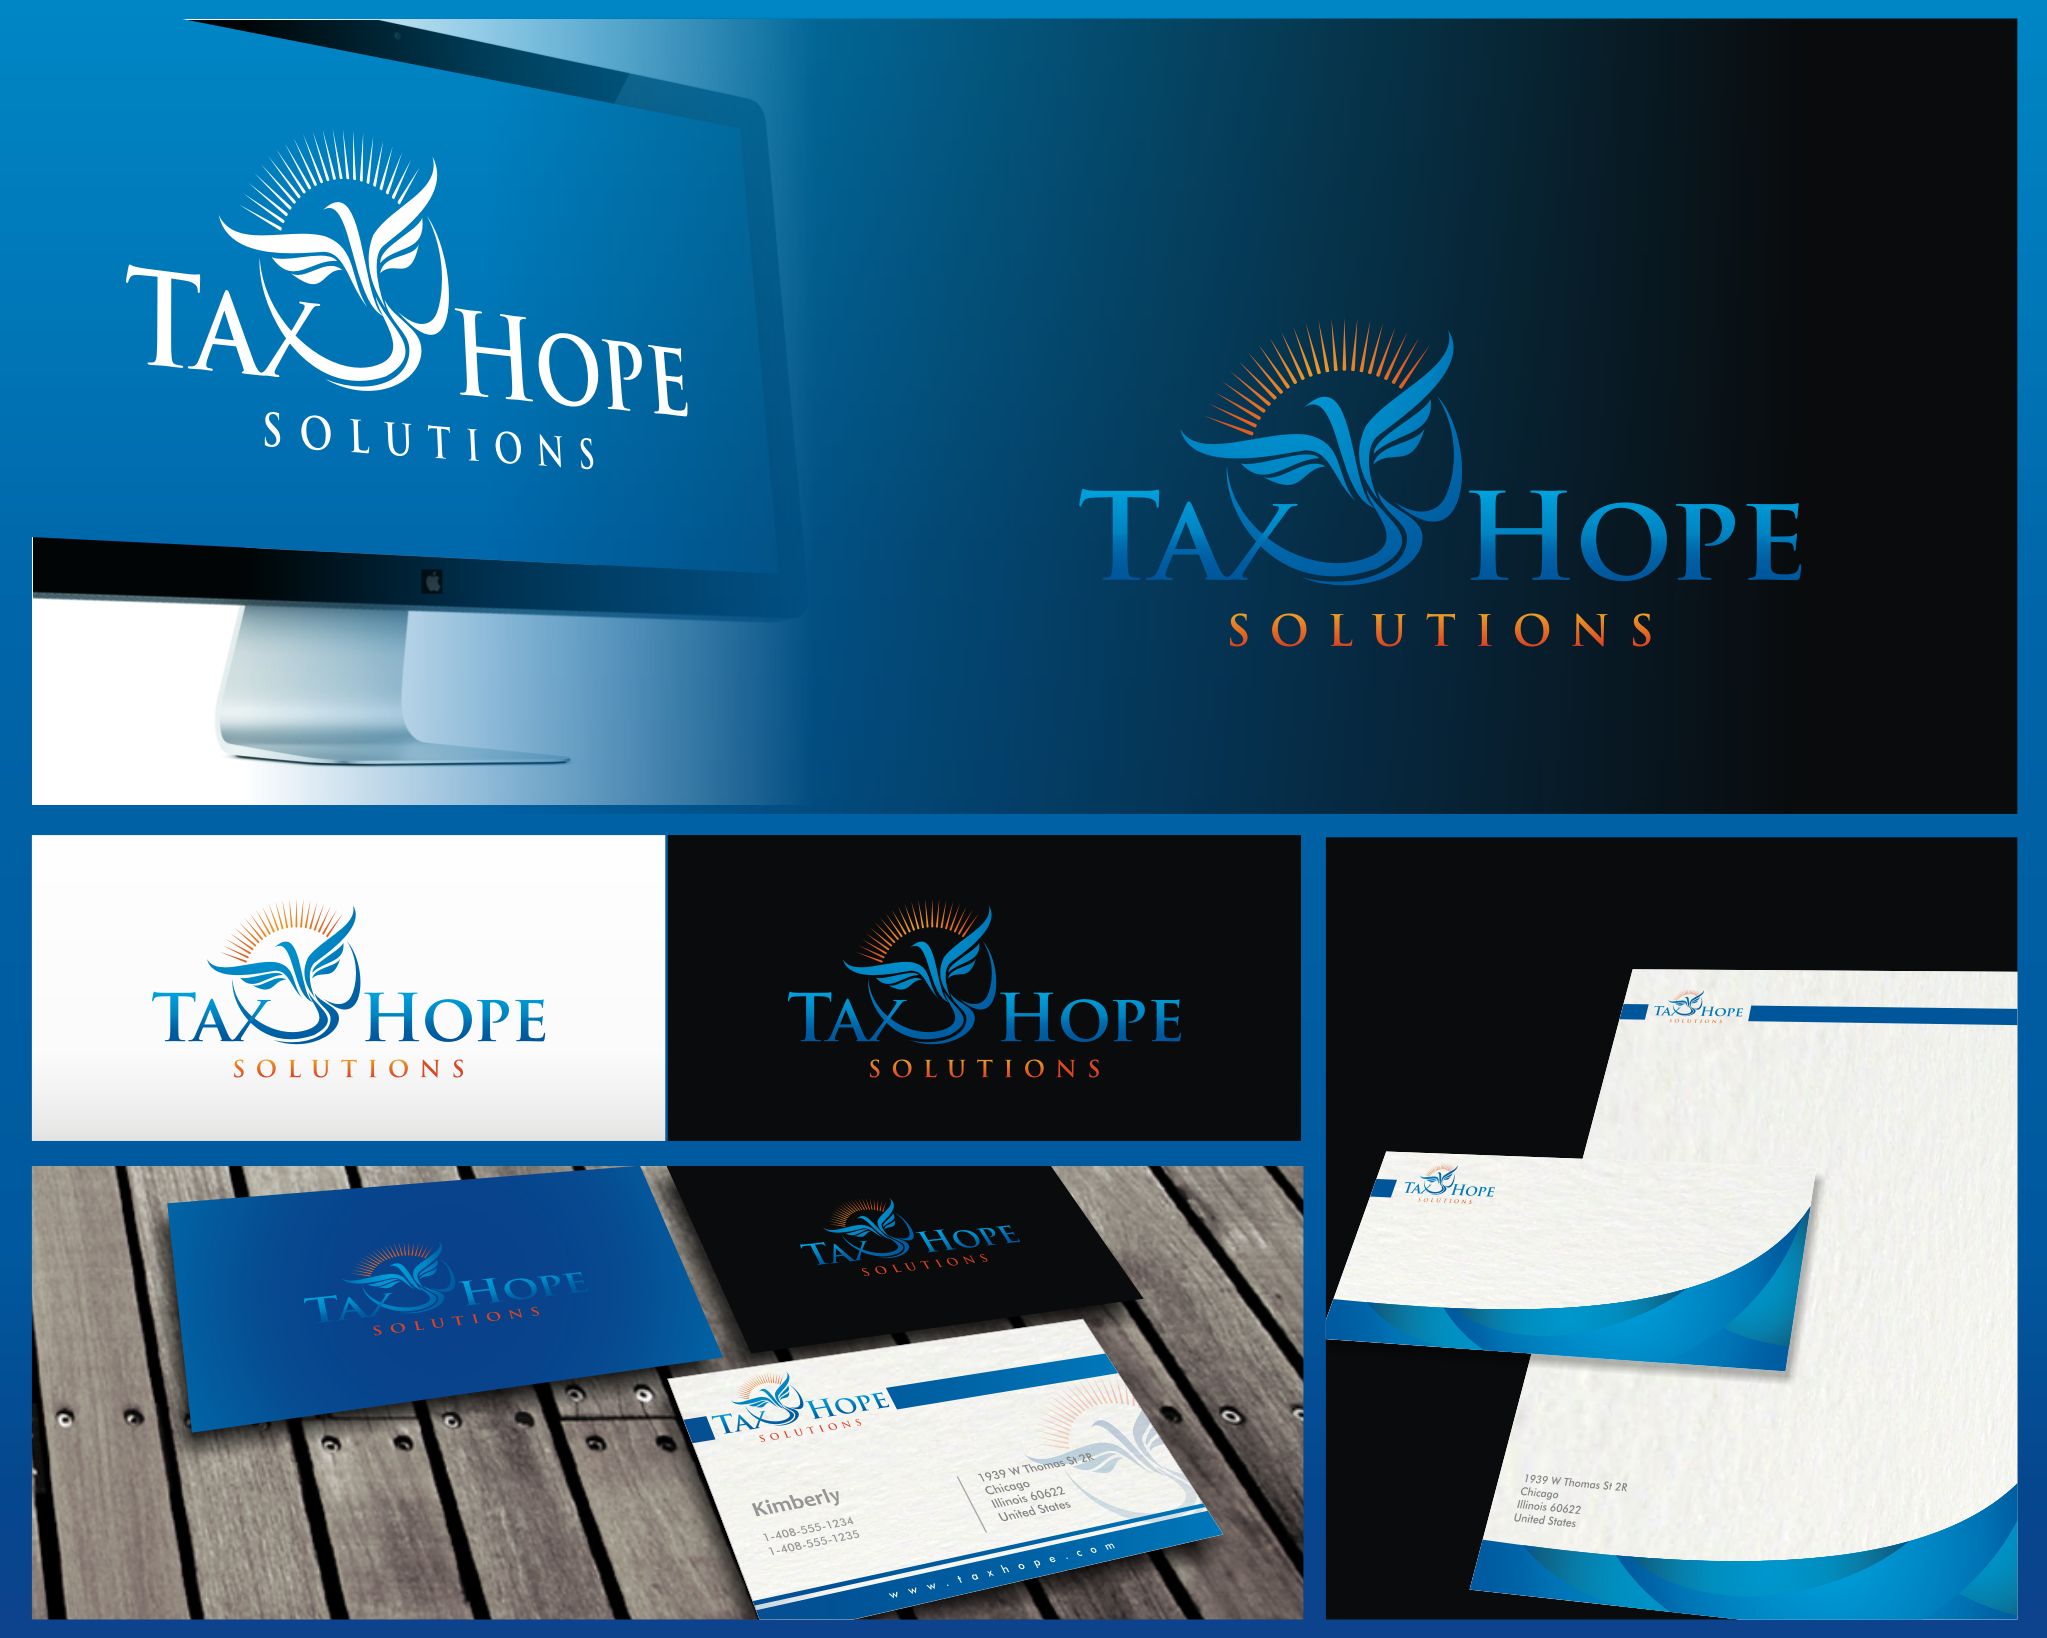 New logo wanted for Tax Hope Solutions